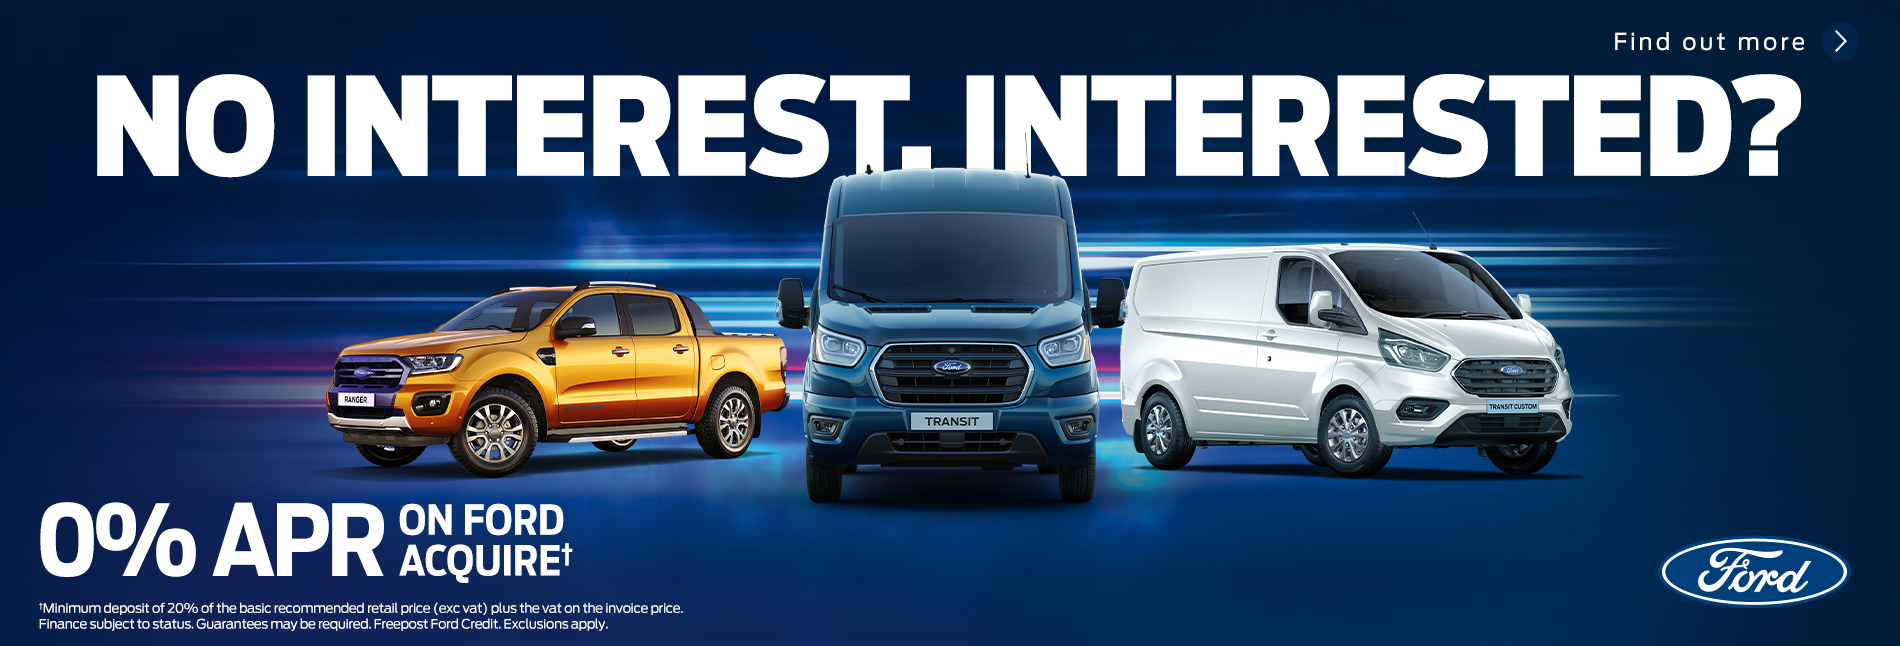 Ford Van Promotions